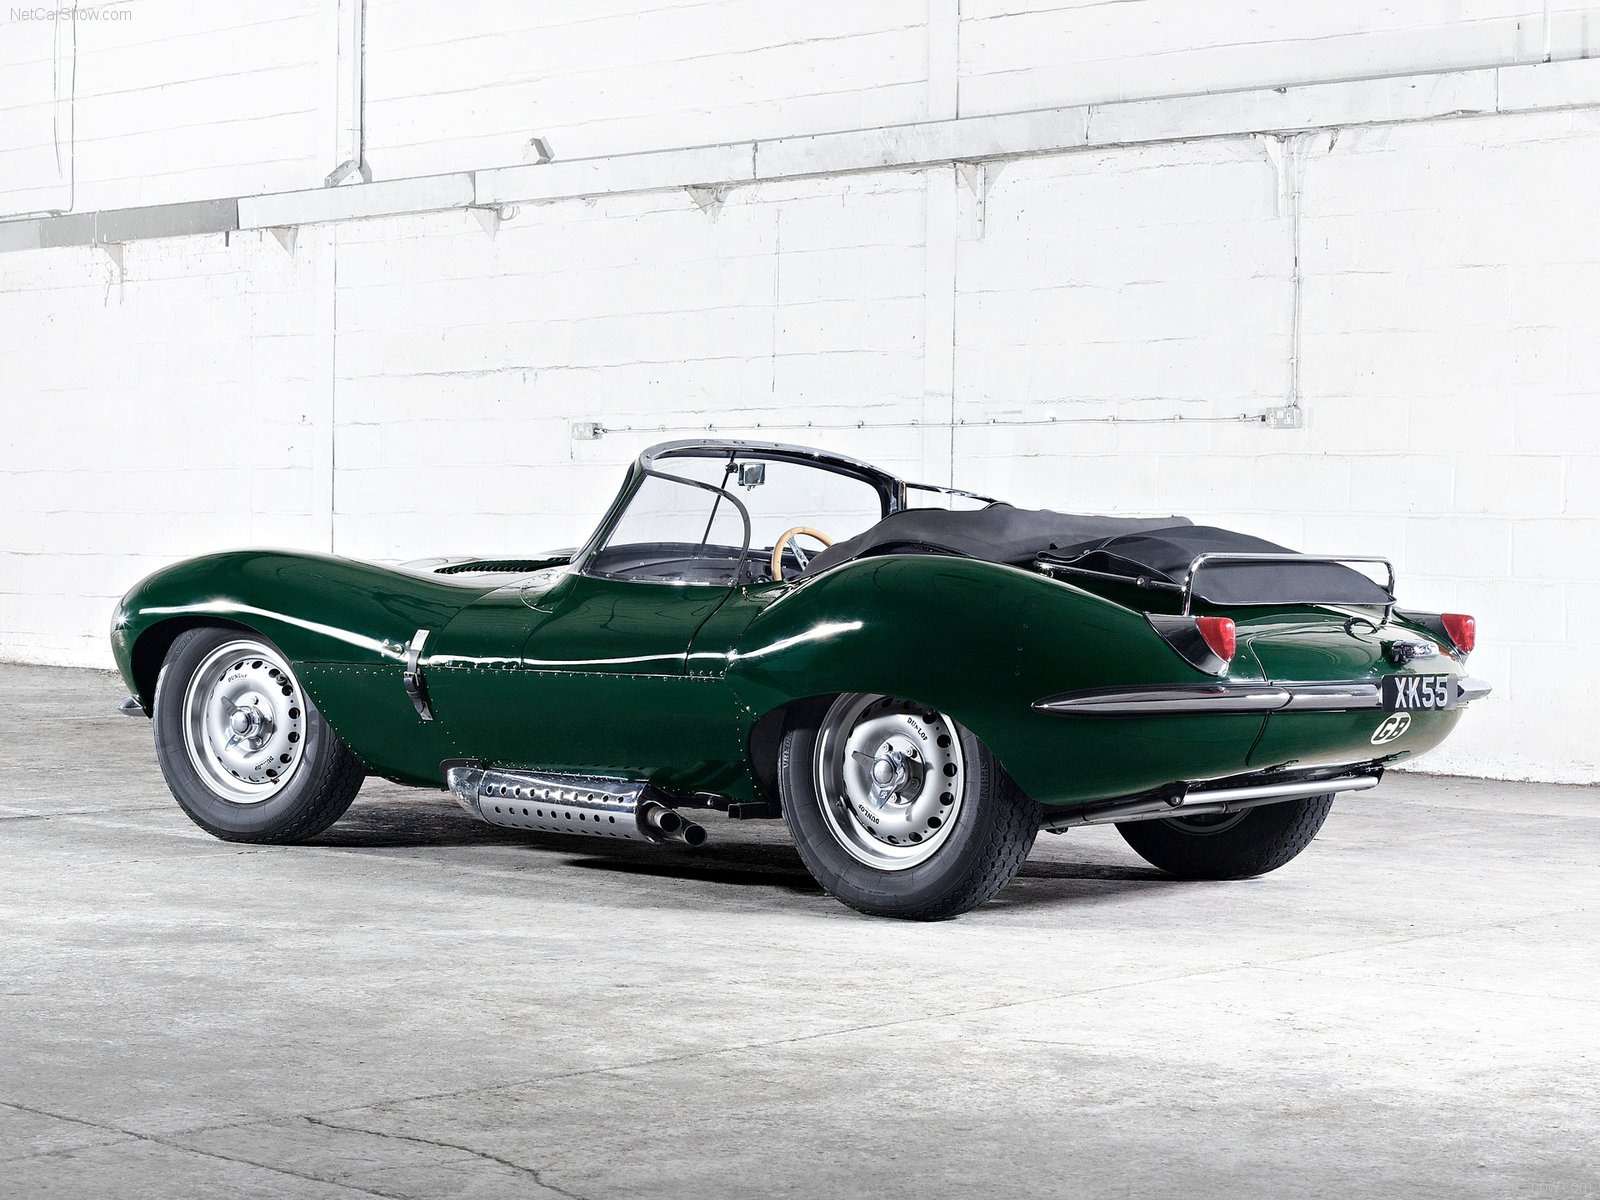 Jaguar-XK_SS_1957_1600x1200_wallpaper_03.jpg